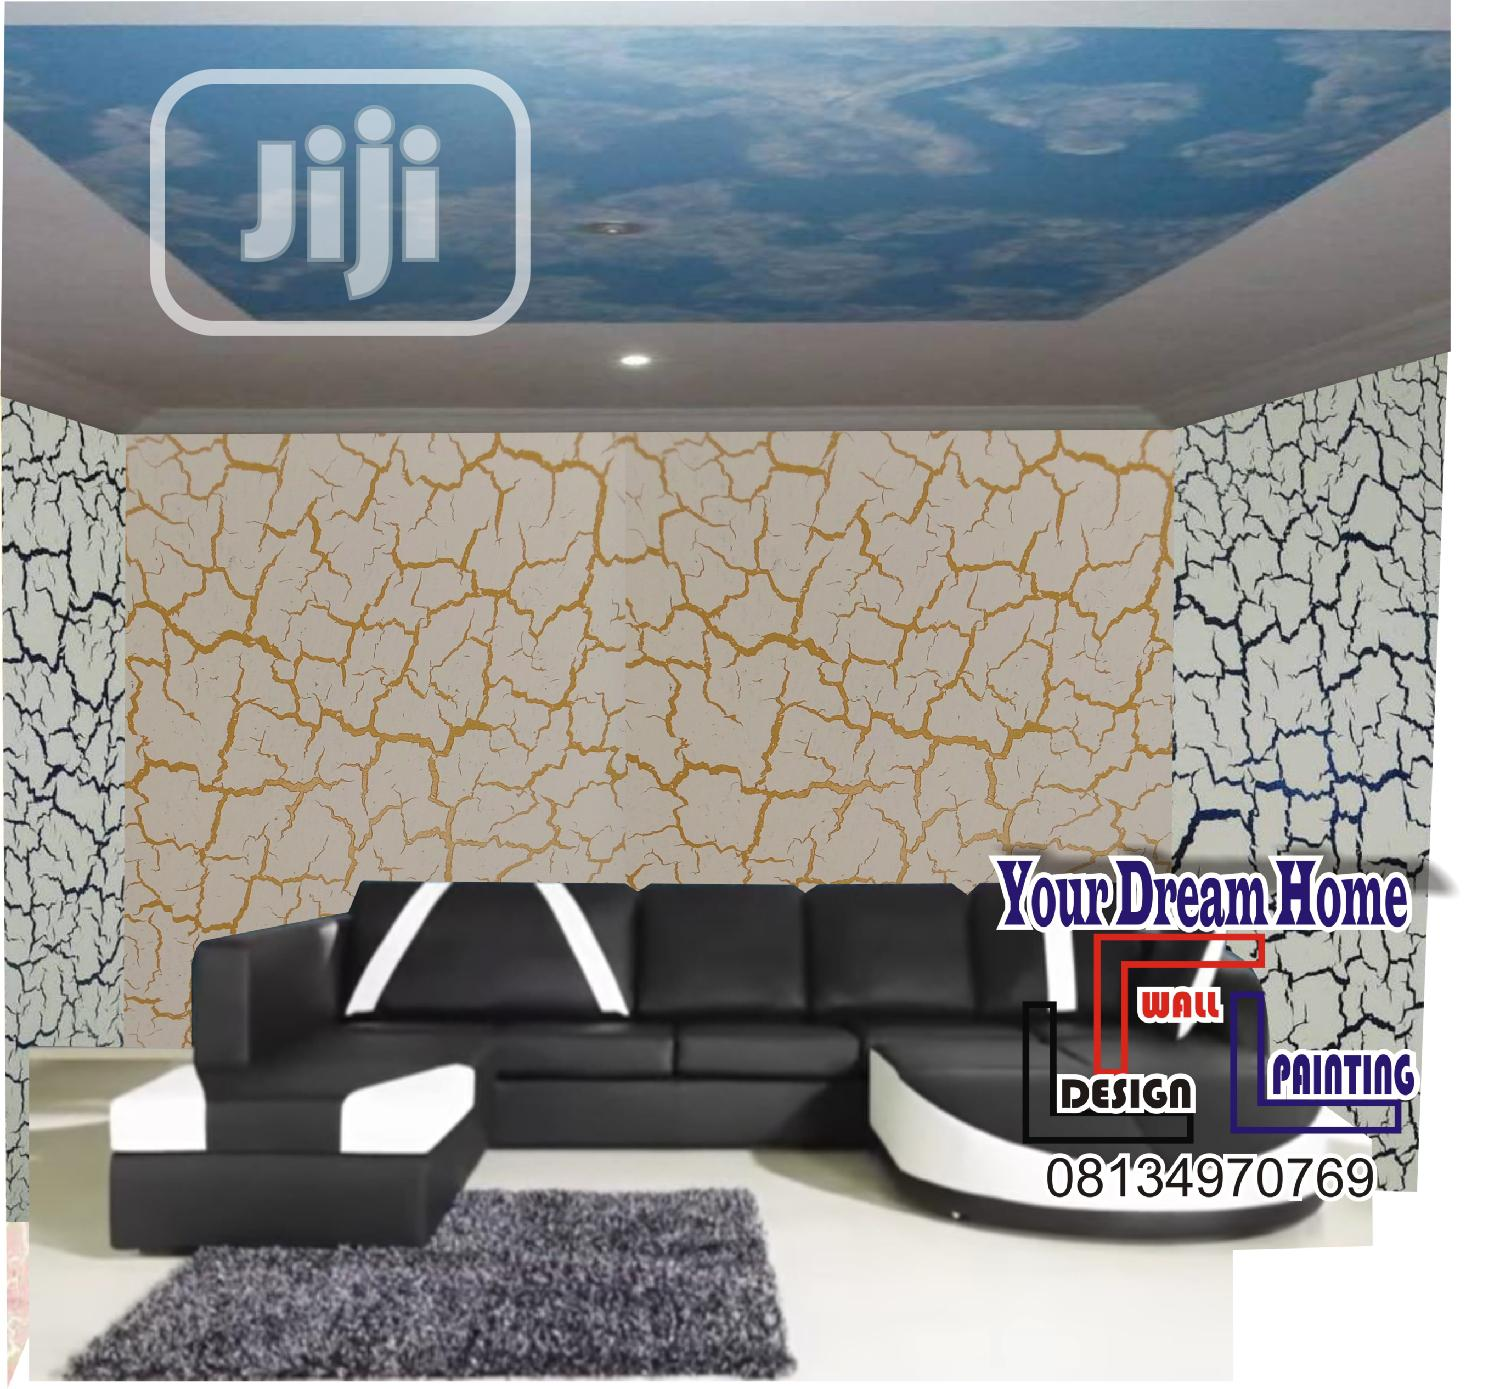 Design Painting ( Crackle Decorative Painting) | Building & Trades Services for sale in Wuse 2, Abuja (FCT) State, Nigeria